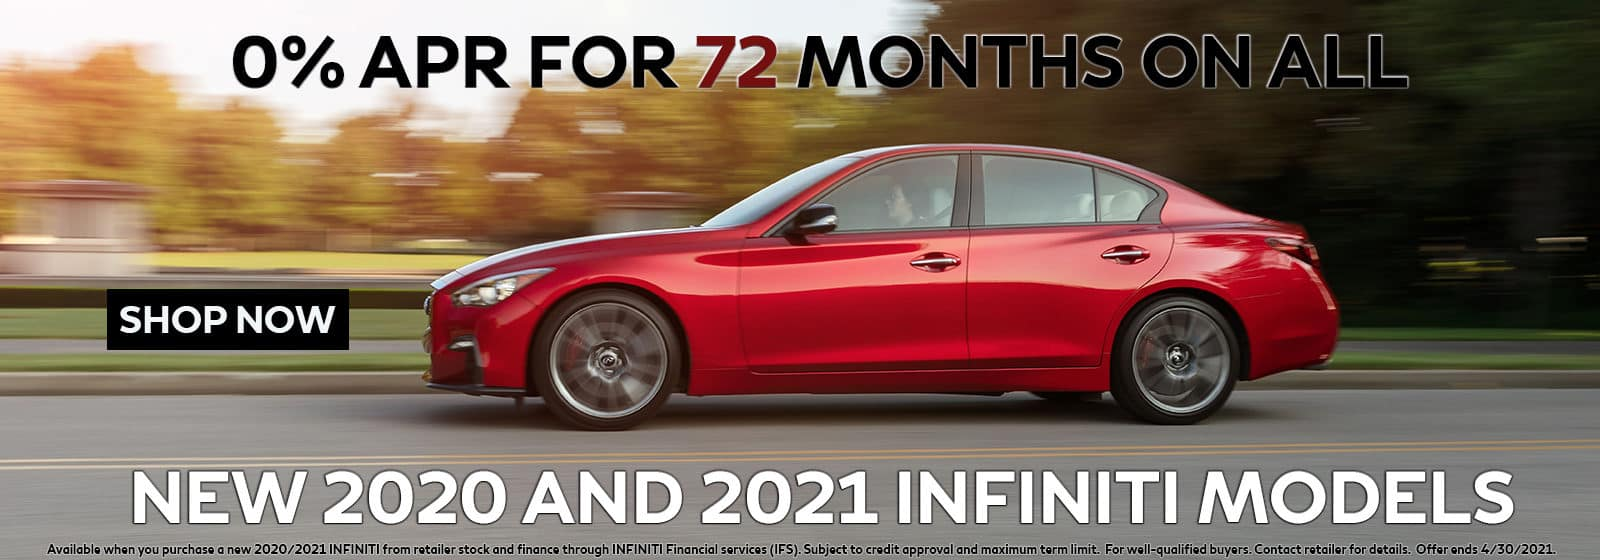 0% for 72 Months on All 2020 and 2021 INFINITI Models